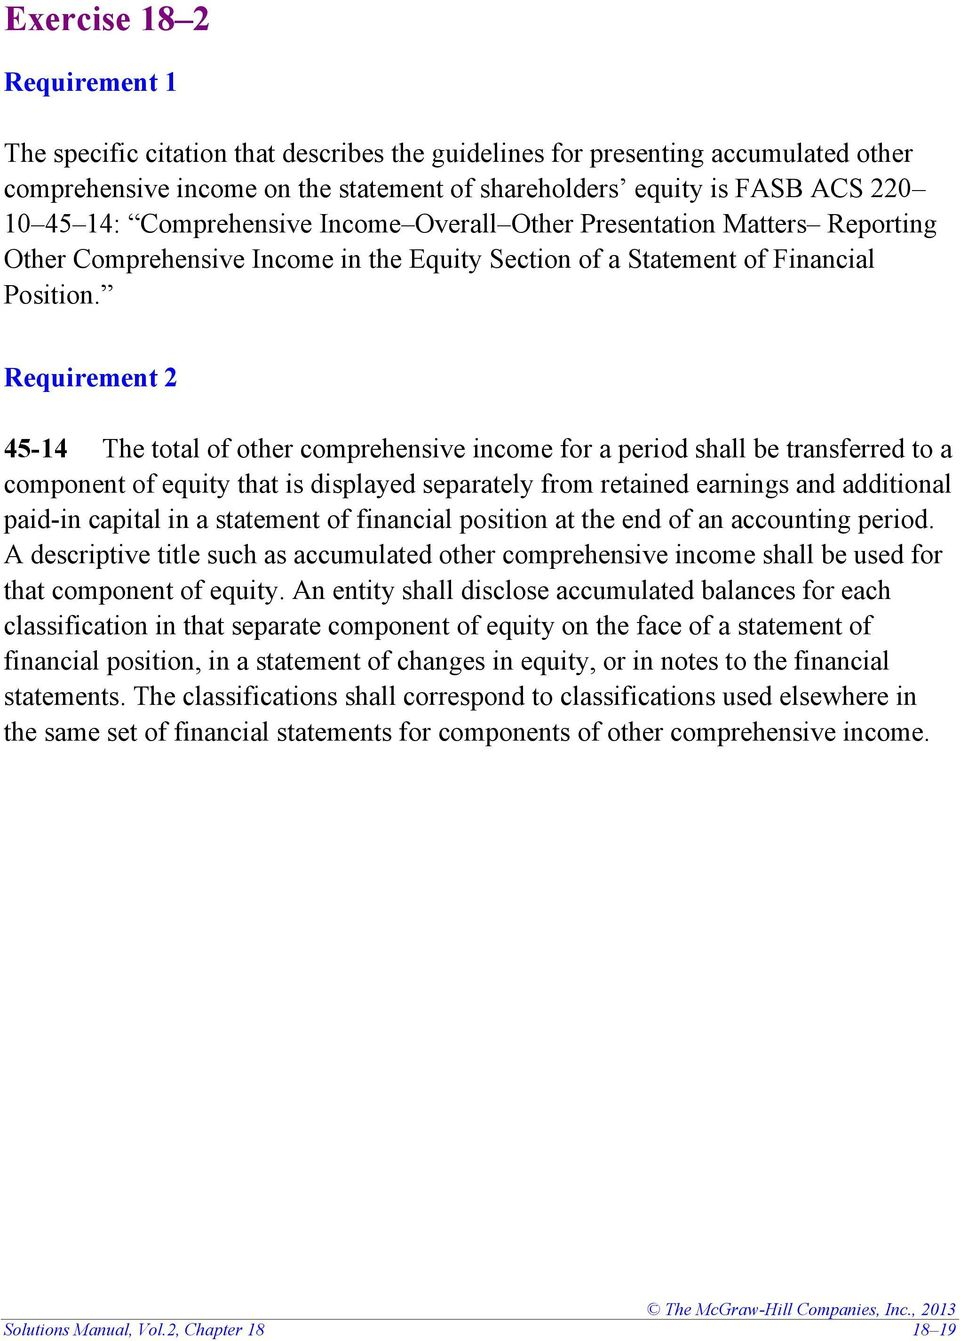 Solutions Manual, Vol.2, Chapter. Requirement 2 45-14 The total of other  comprehensive income for a period shall be